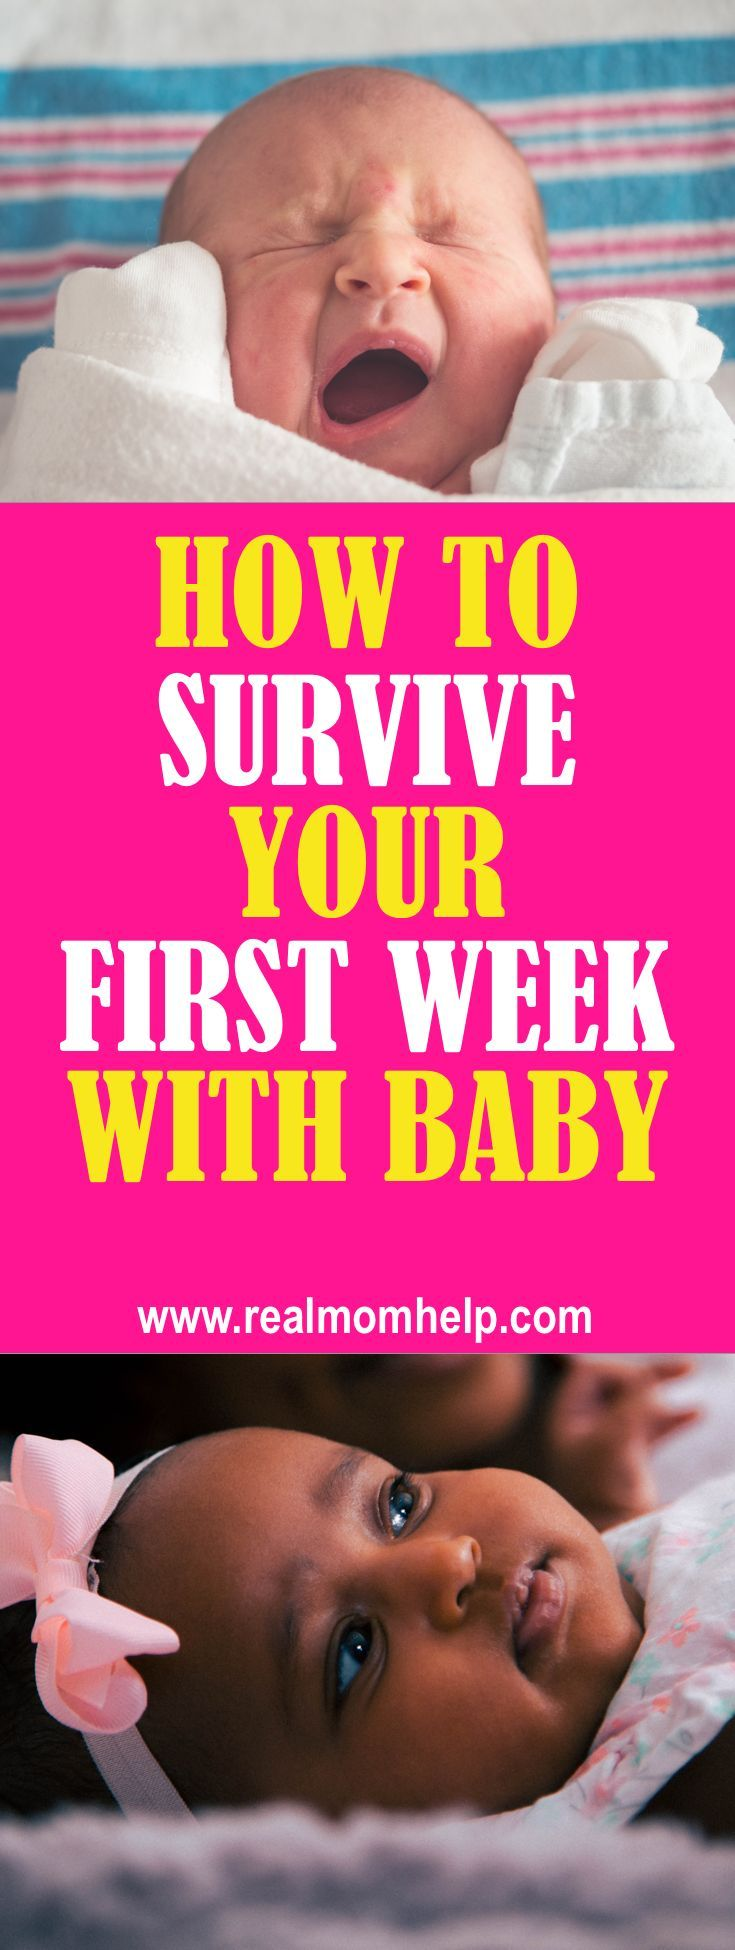 How to survive the first week after birth